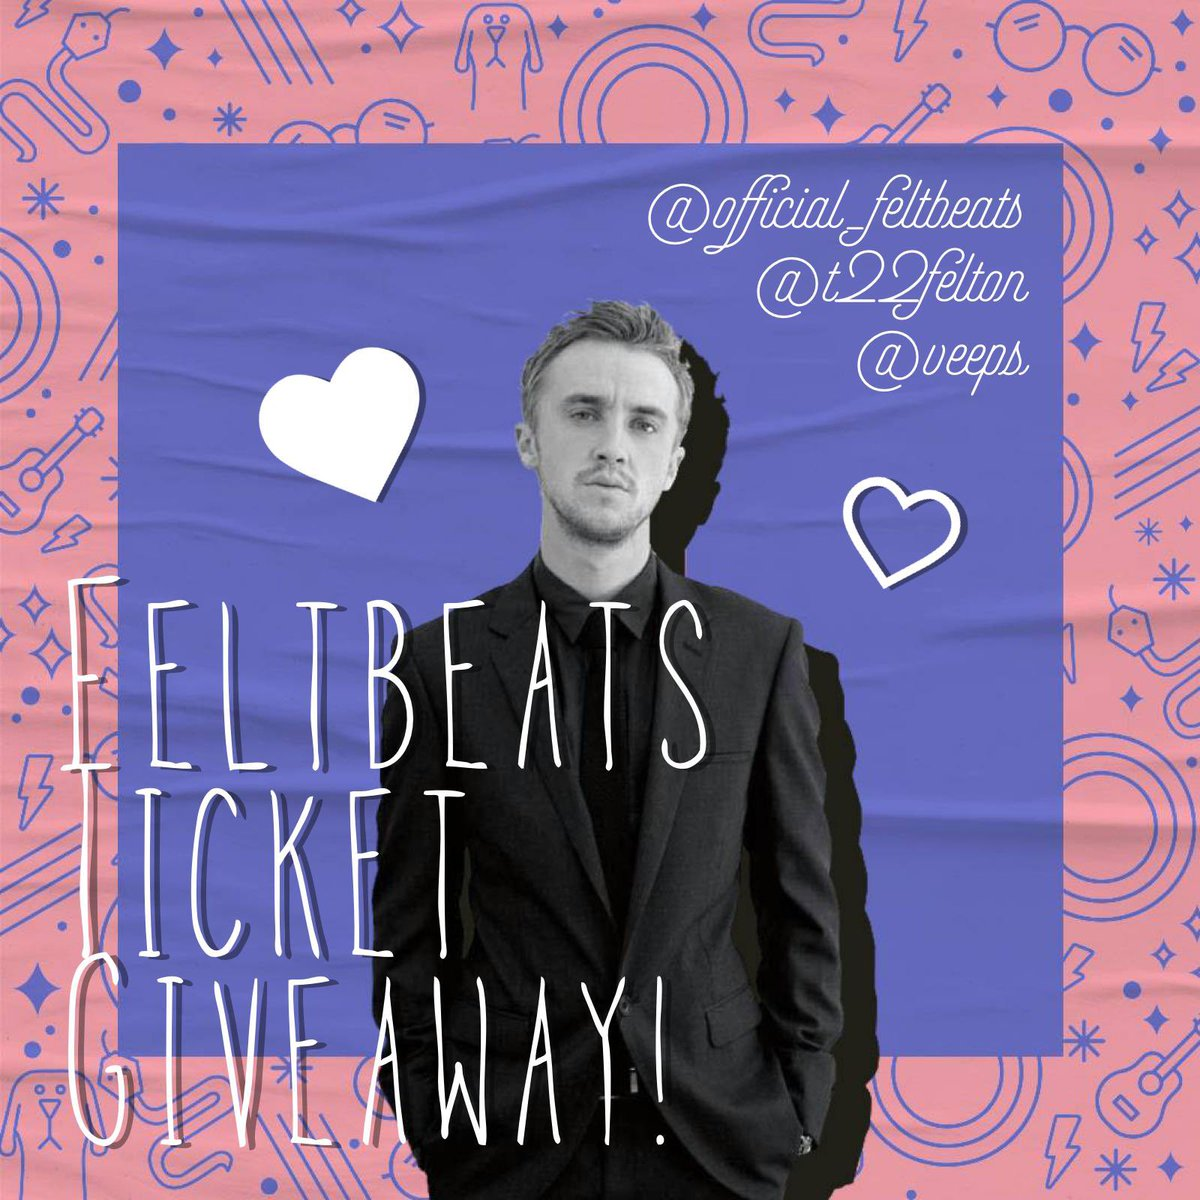 Want a chance to win a ticket to @TomFelton's Home Party next weekend? Check it out here